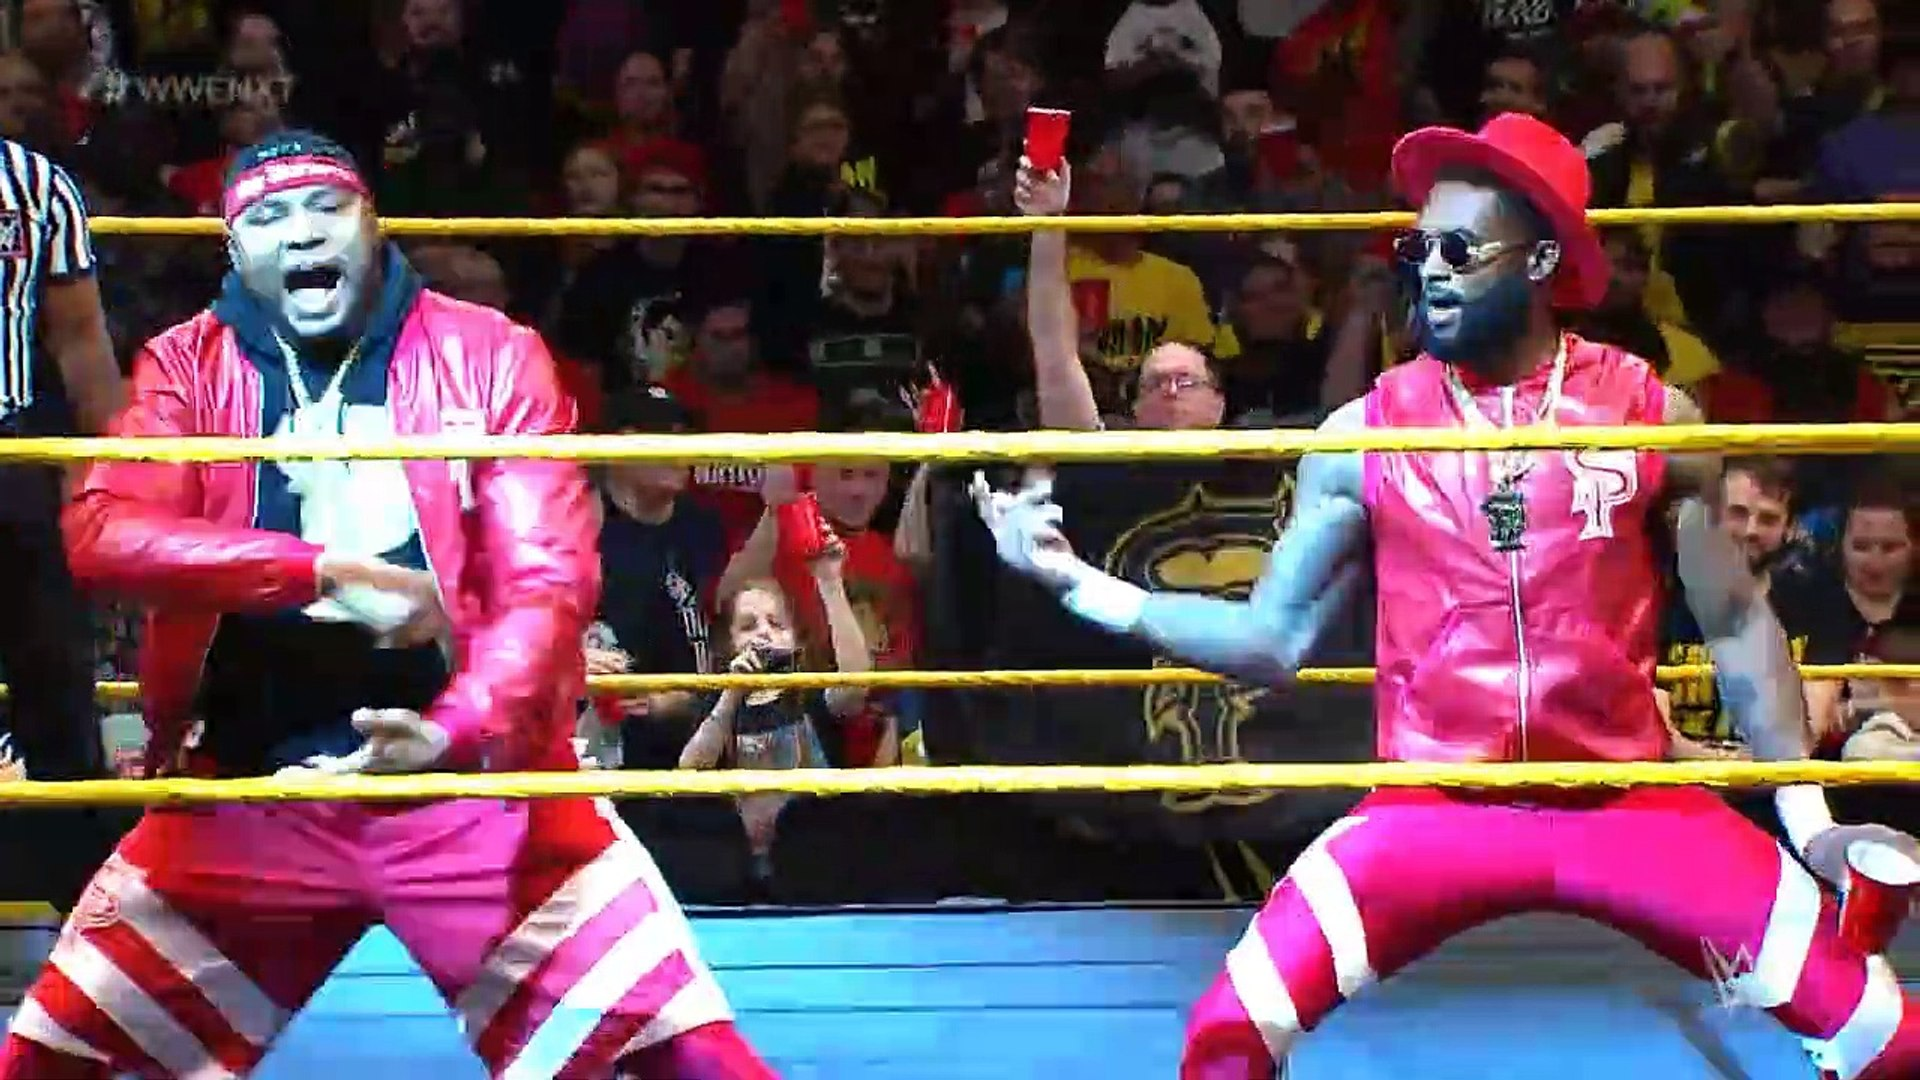 NXT: The Viking Raiders vs The Street Profits - NXT Tag Team Championships